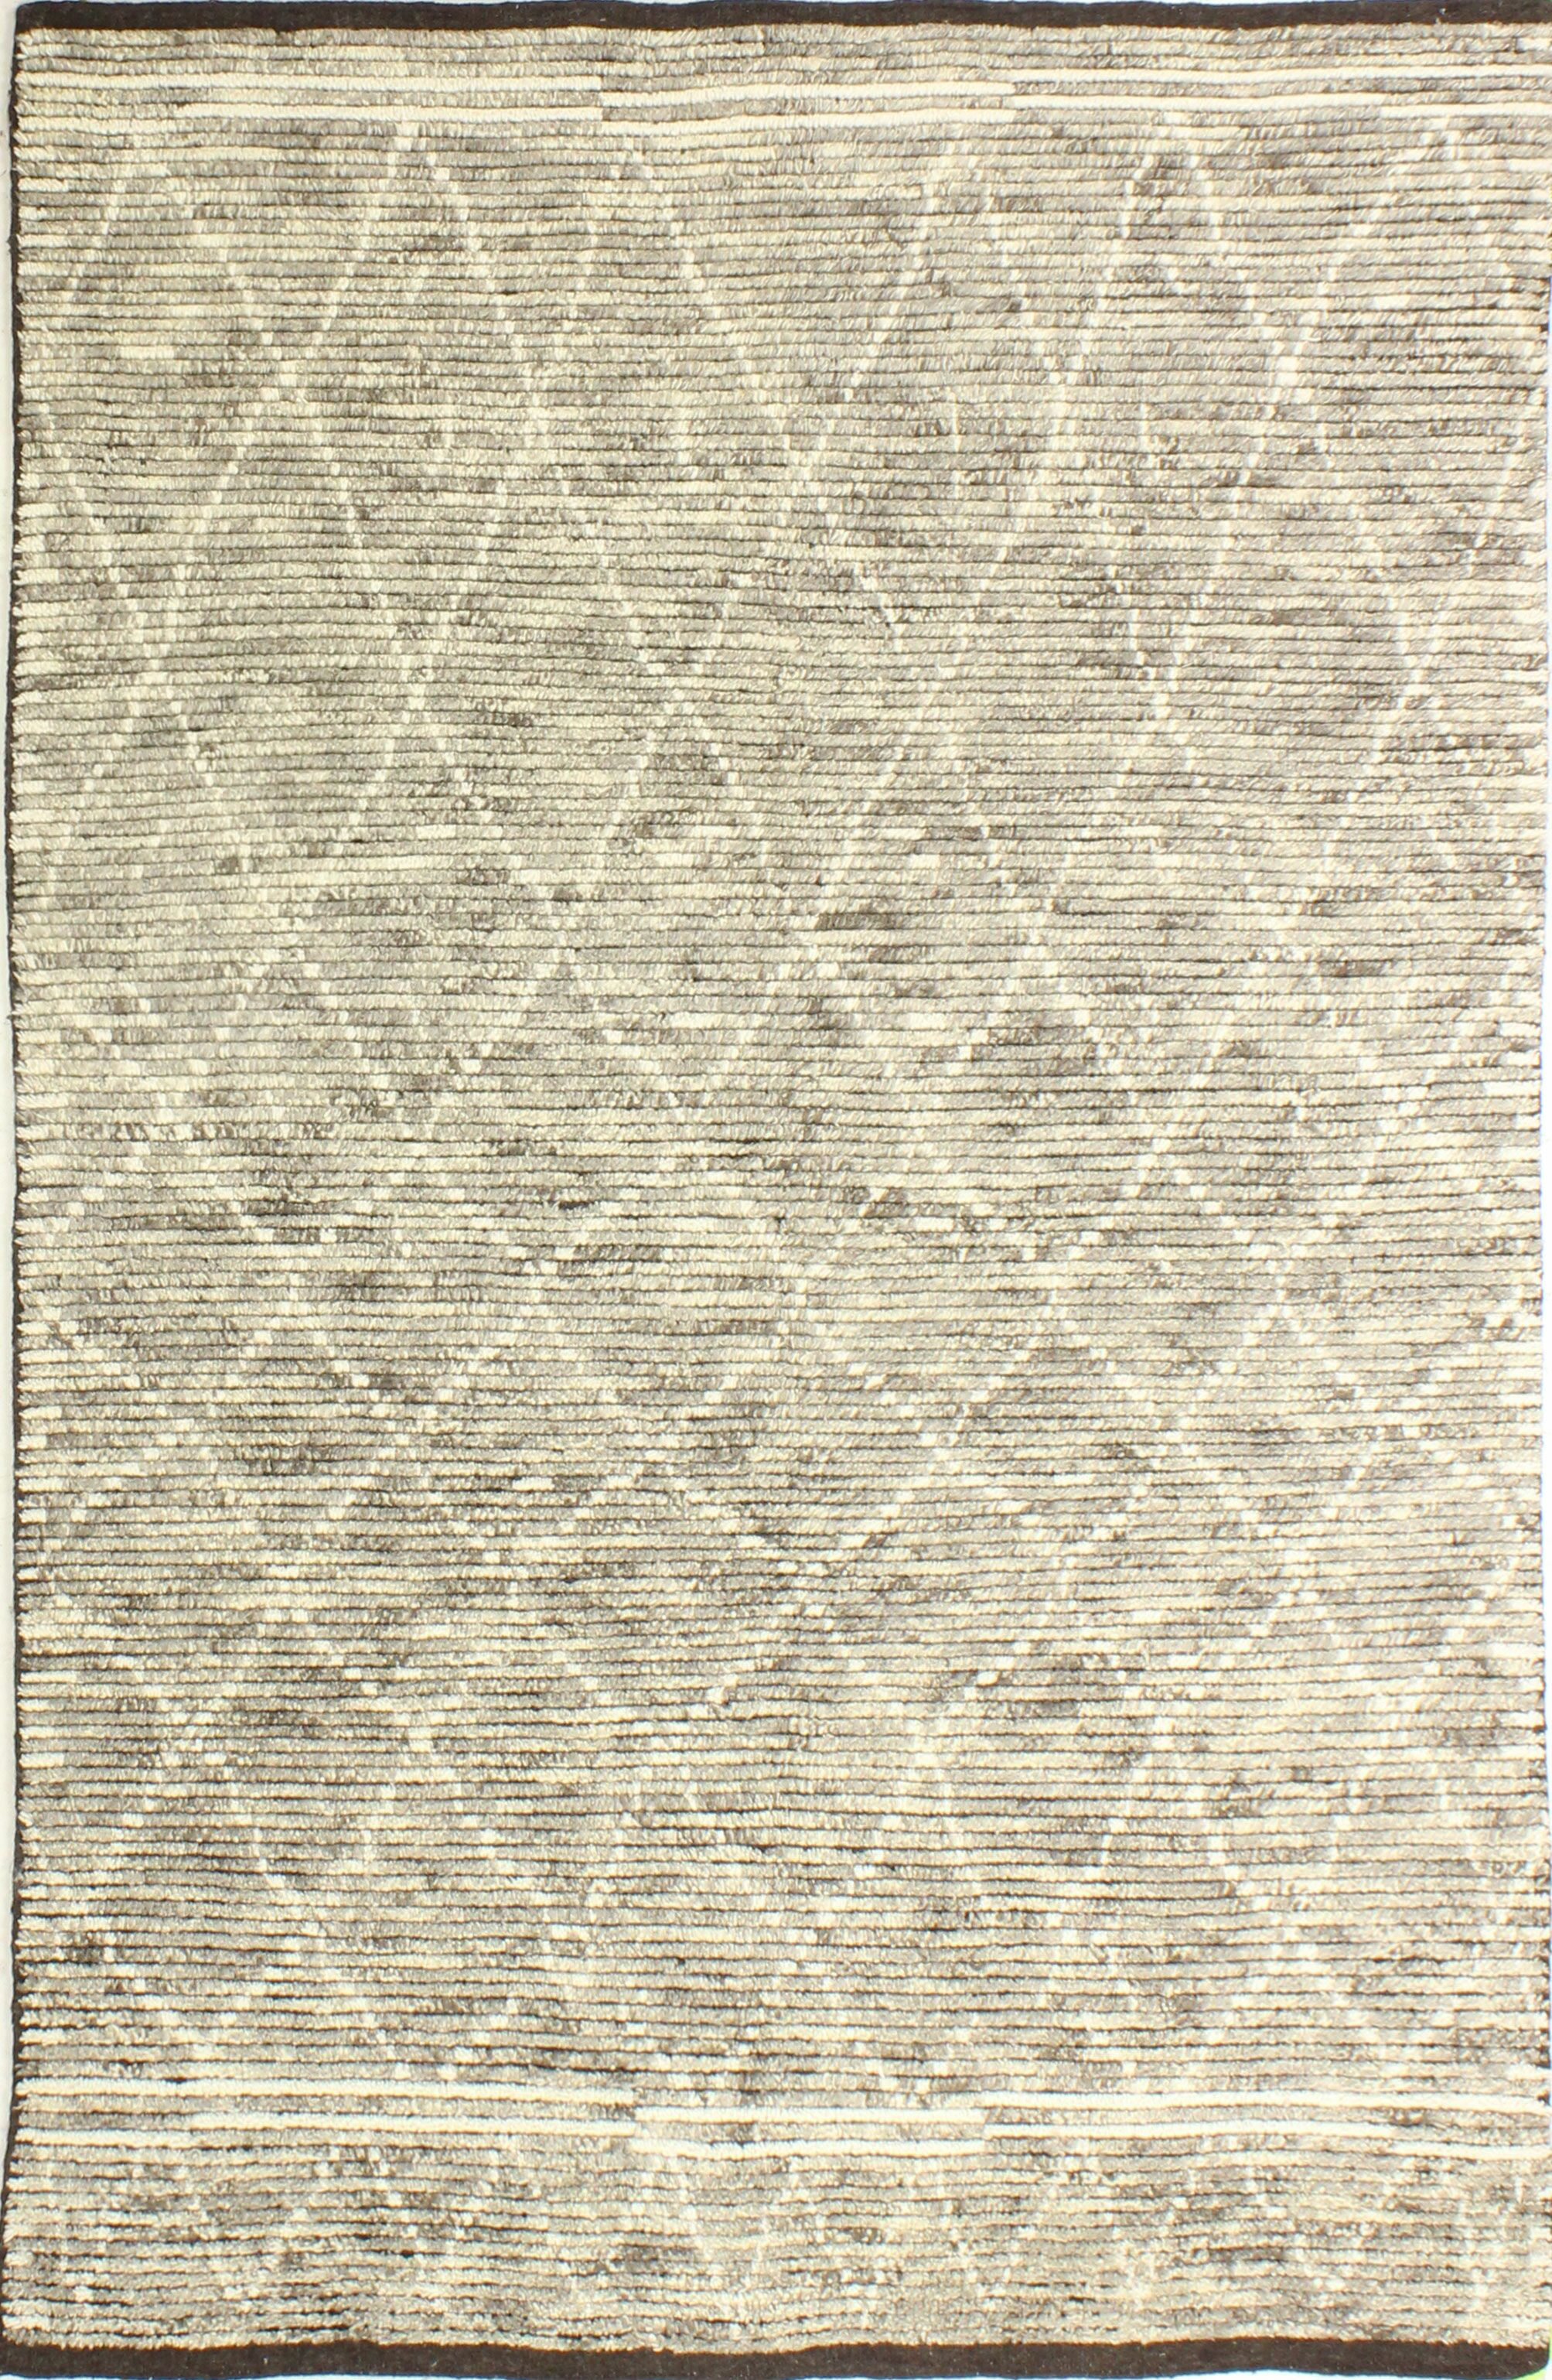 Floressa Hand-Knotted Wool Gray Area Rug Rug Size: 7'6